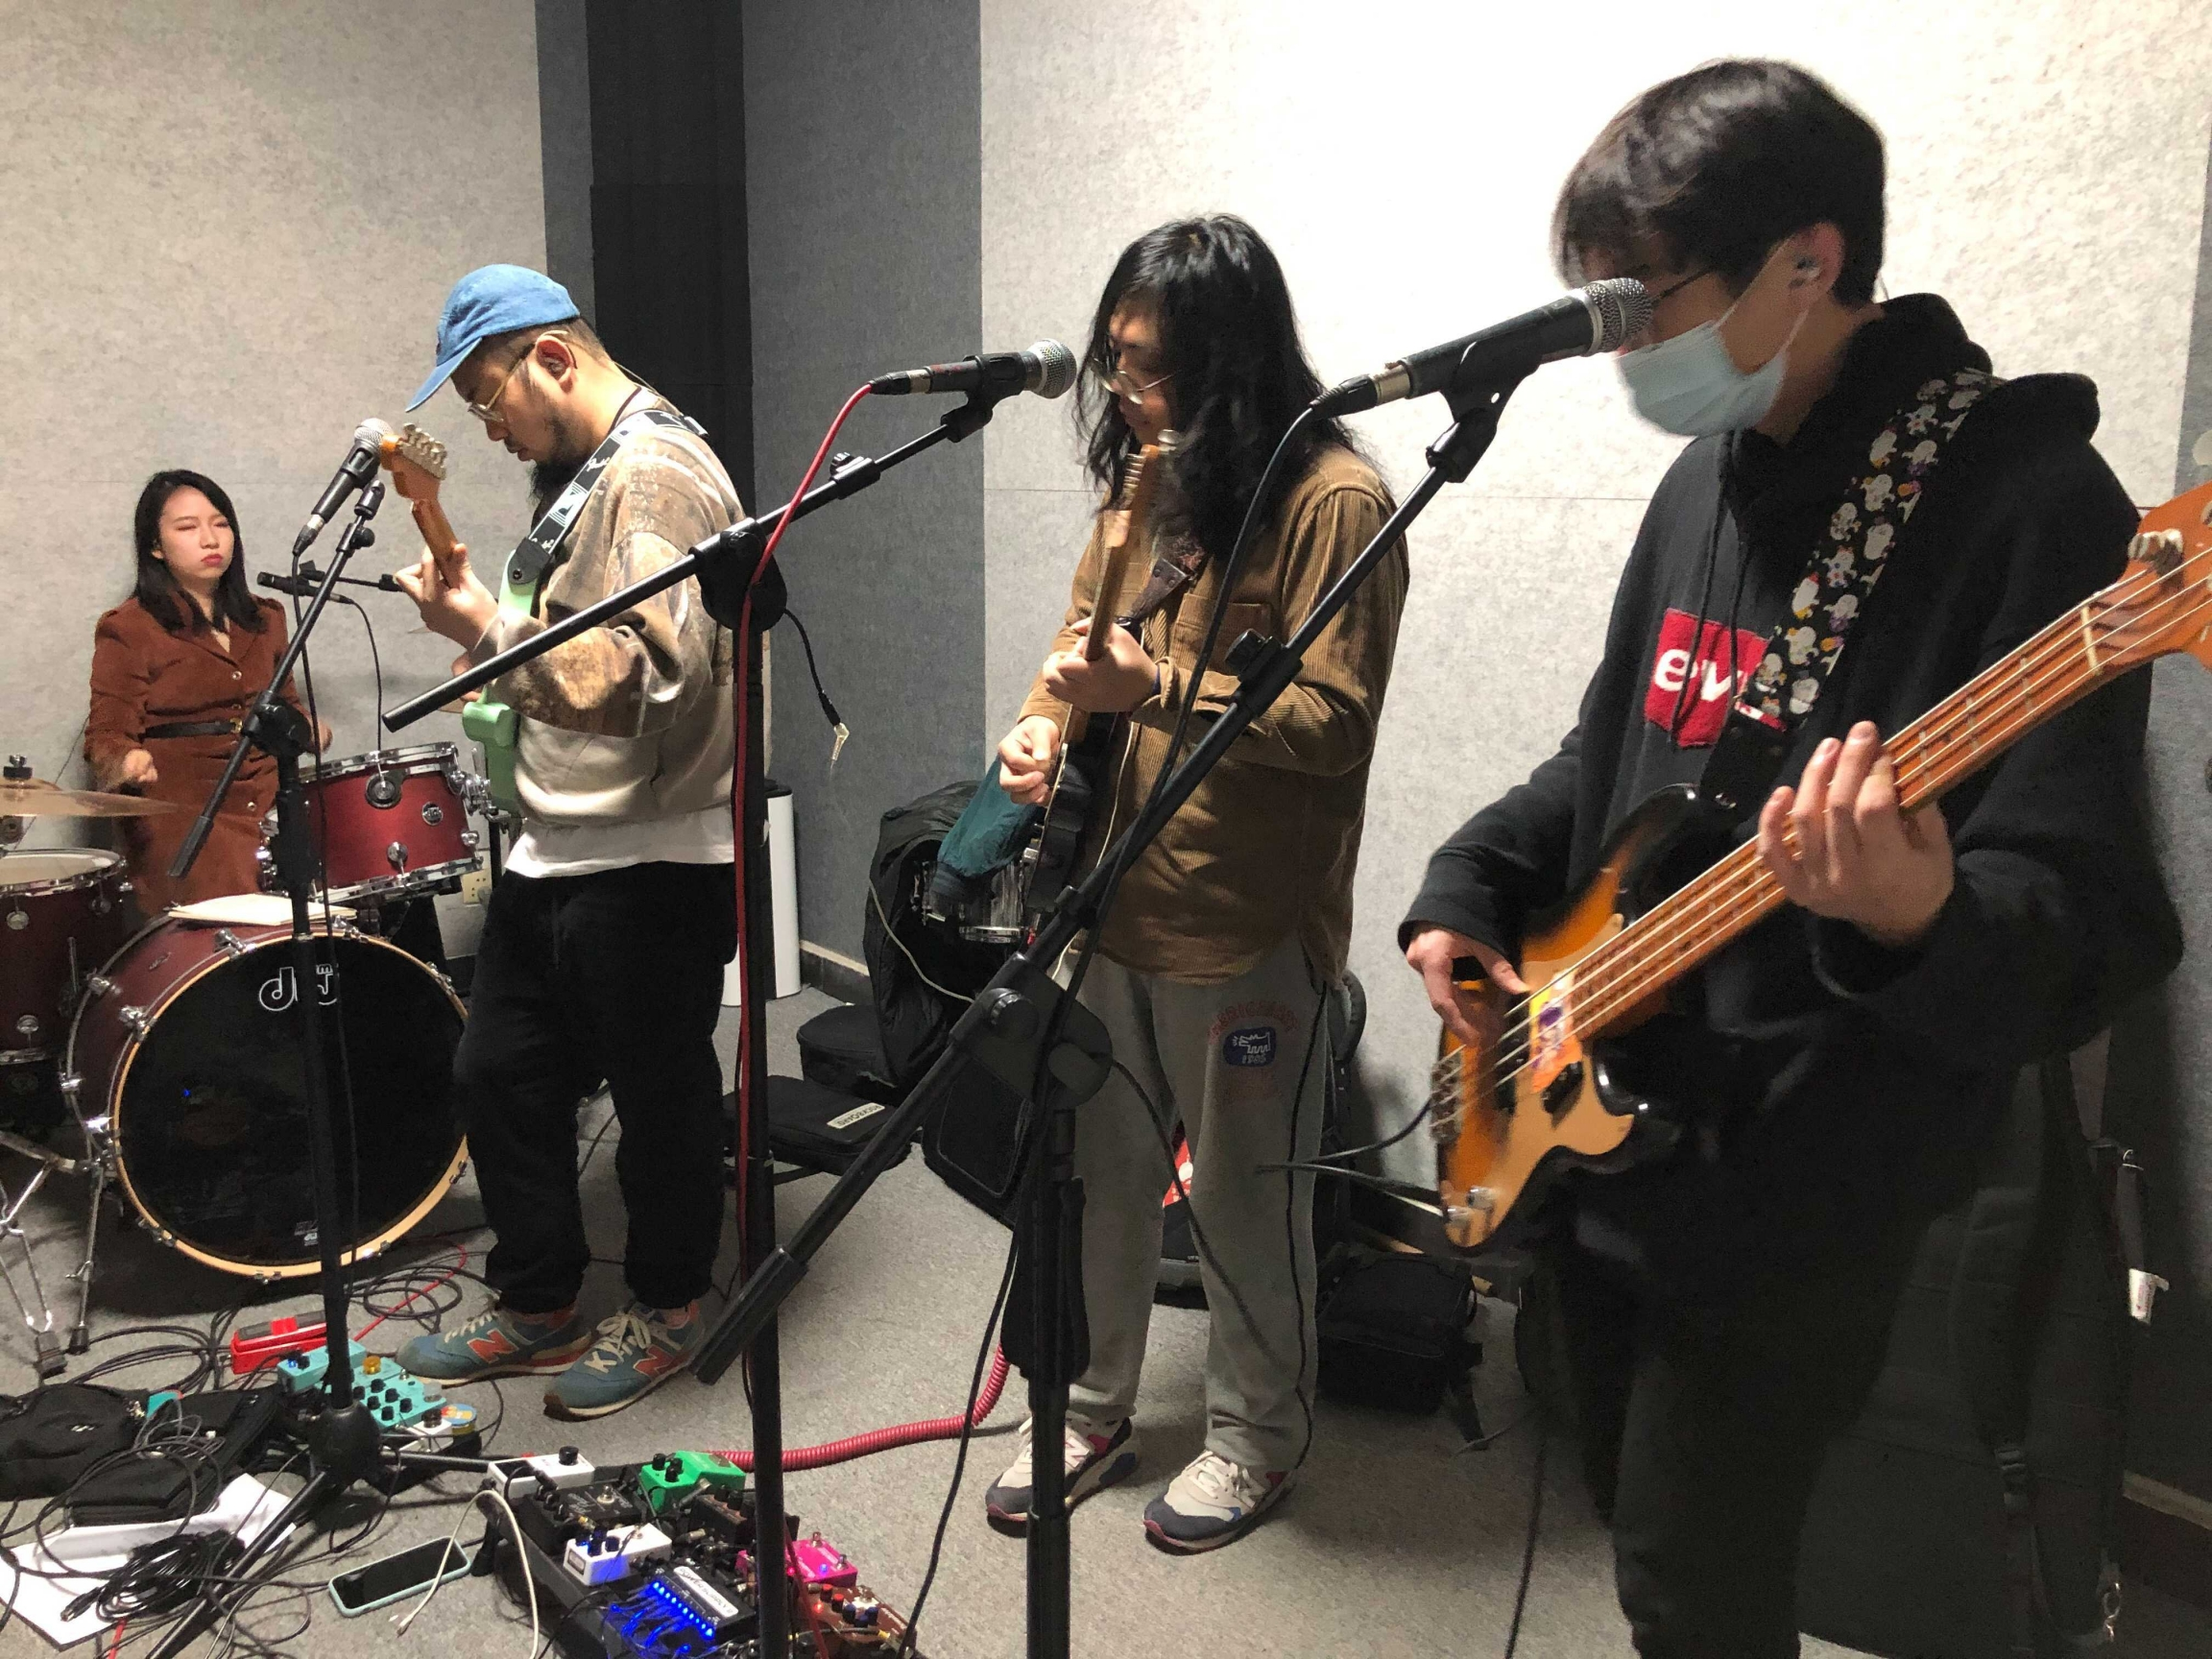 The indie band Chinese Football rehearses.